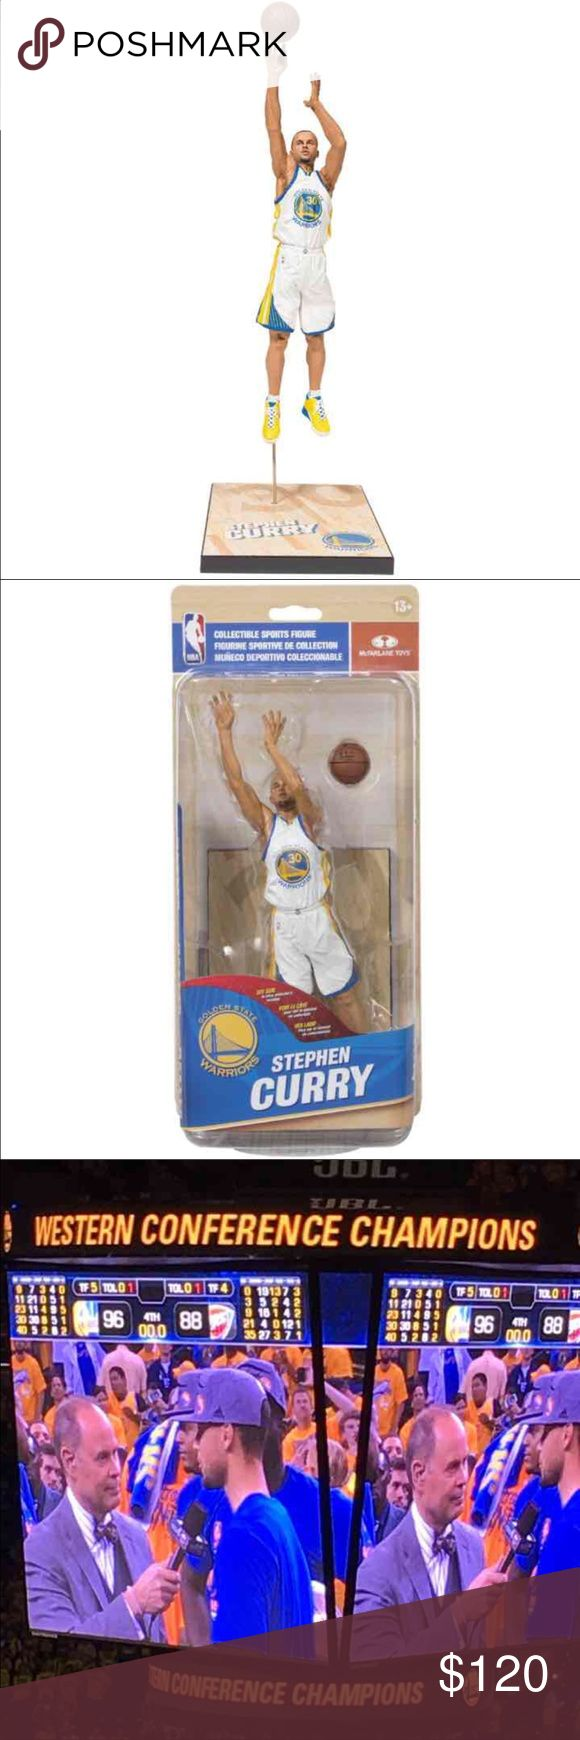 """Warriors Steph Curry Collectable Figure NBA Golden State Warriors' Stephen Curry Action Figure.  Curry is immortalized taking yet another impossible shot in his white Golden State Warriors home uniform Figure is showcased on a basketball court sectional base with the player's name and team logo   Figure stands approx. 6"""" tall Sold in NBA-themed packaging.  Allow 2 days to ship.   Retail $120 Brisette #22 Other"""